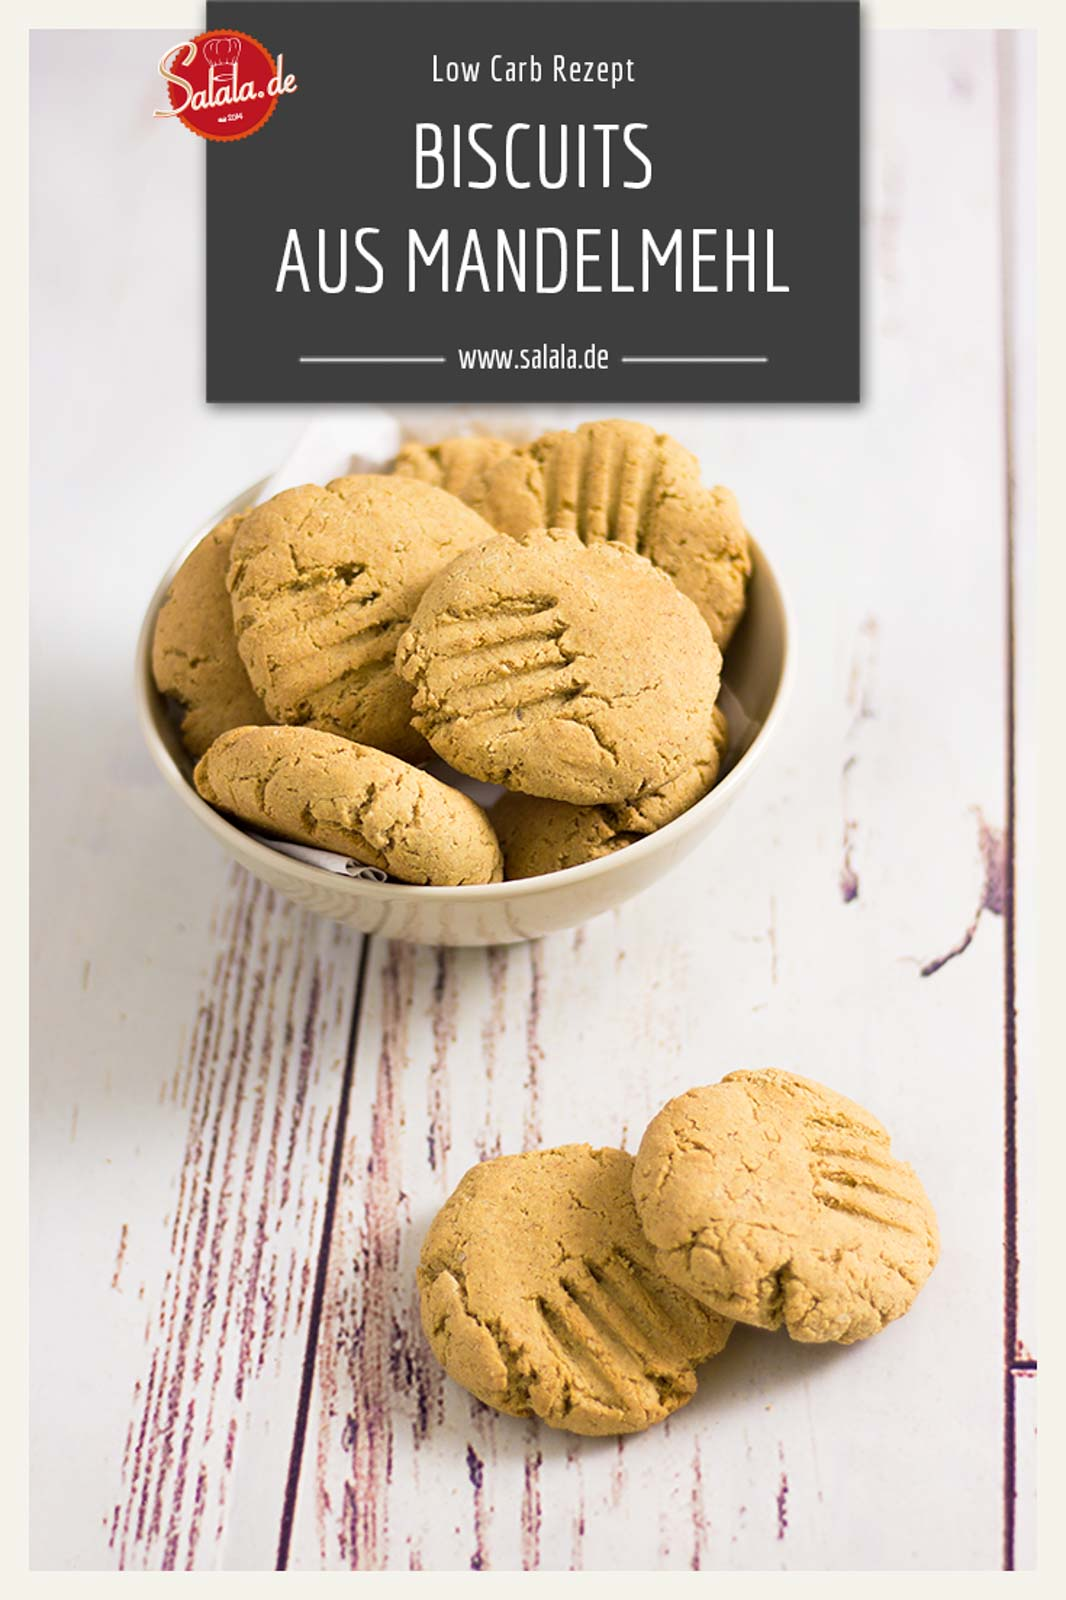 Mandel Biscuits - by salala.de - Rezept Low Carb Beilage backen ohne Mehll #lowcarb #keto #mehlfrei #backen